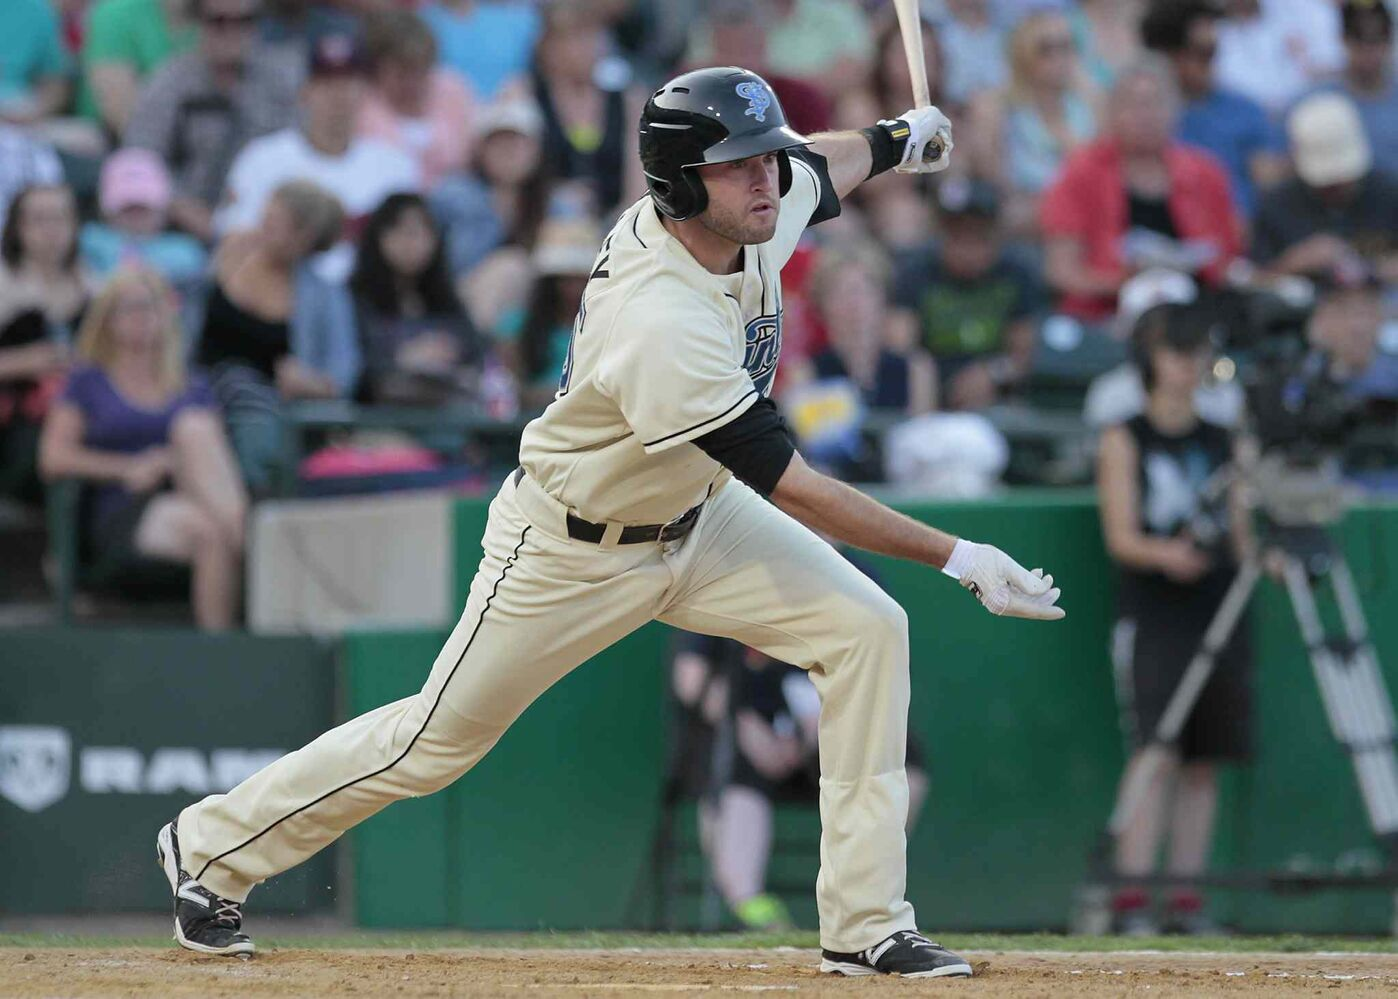 St. Paul Saints' Henry Wrigley hits during Tuesday's All-Star game at Shaw Park. (John Woods / Winnipeg Free Press)